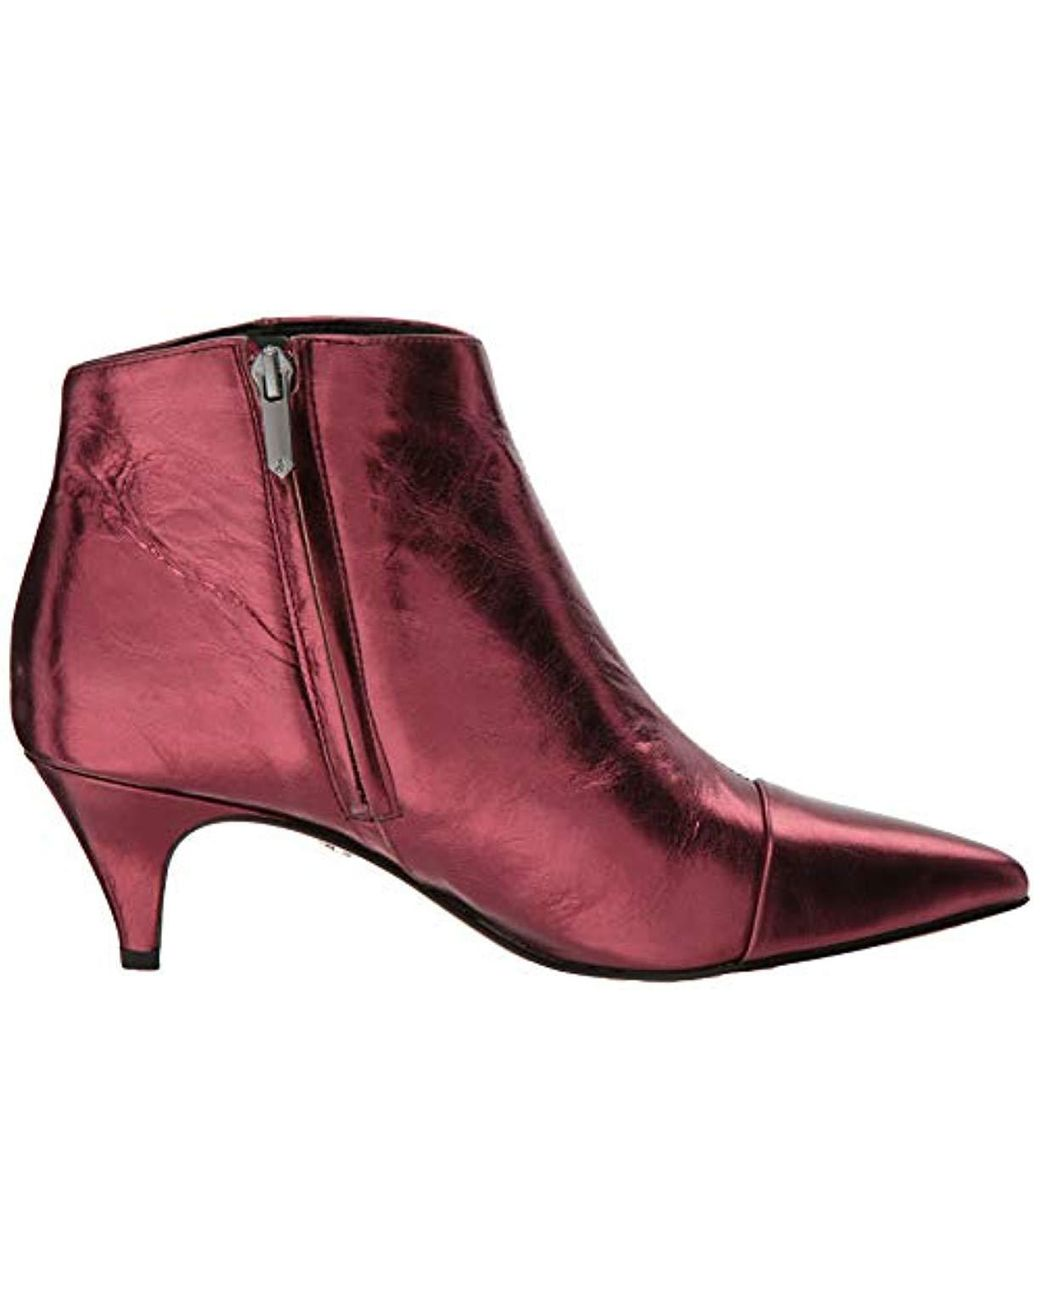 missguided london sale, Missguided – Ankle Boot in Kroko